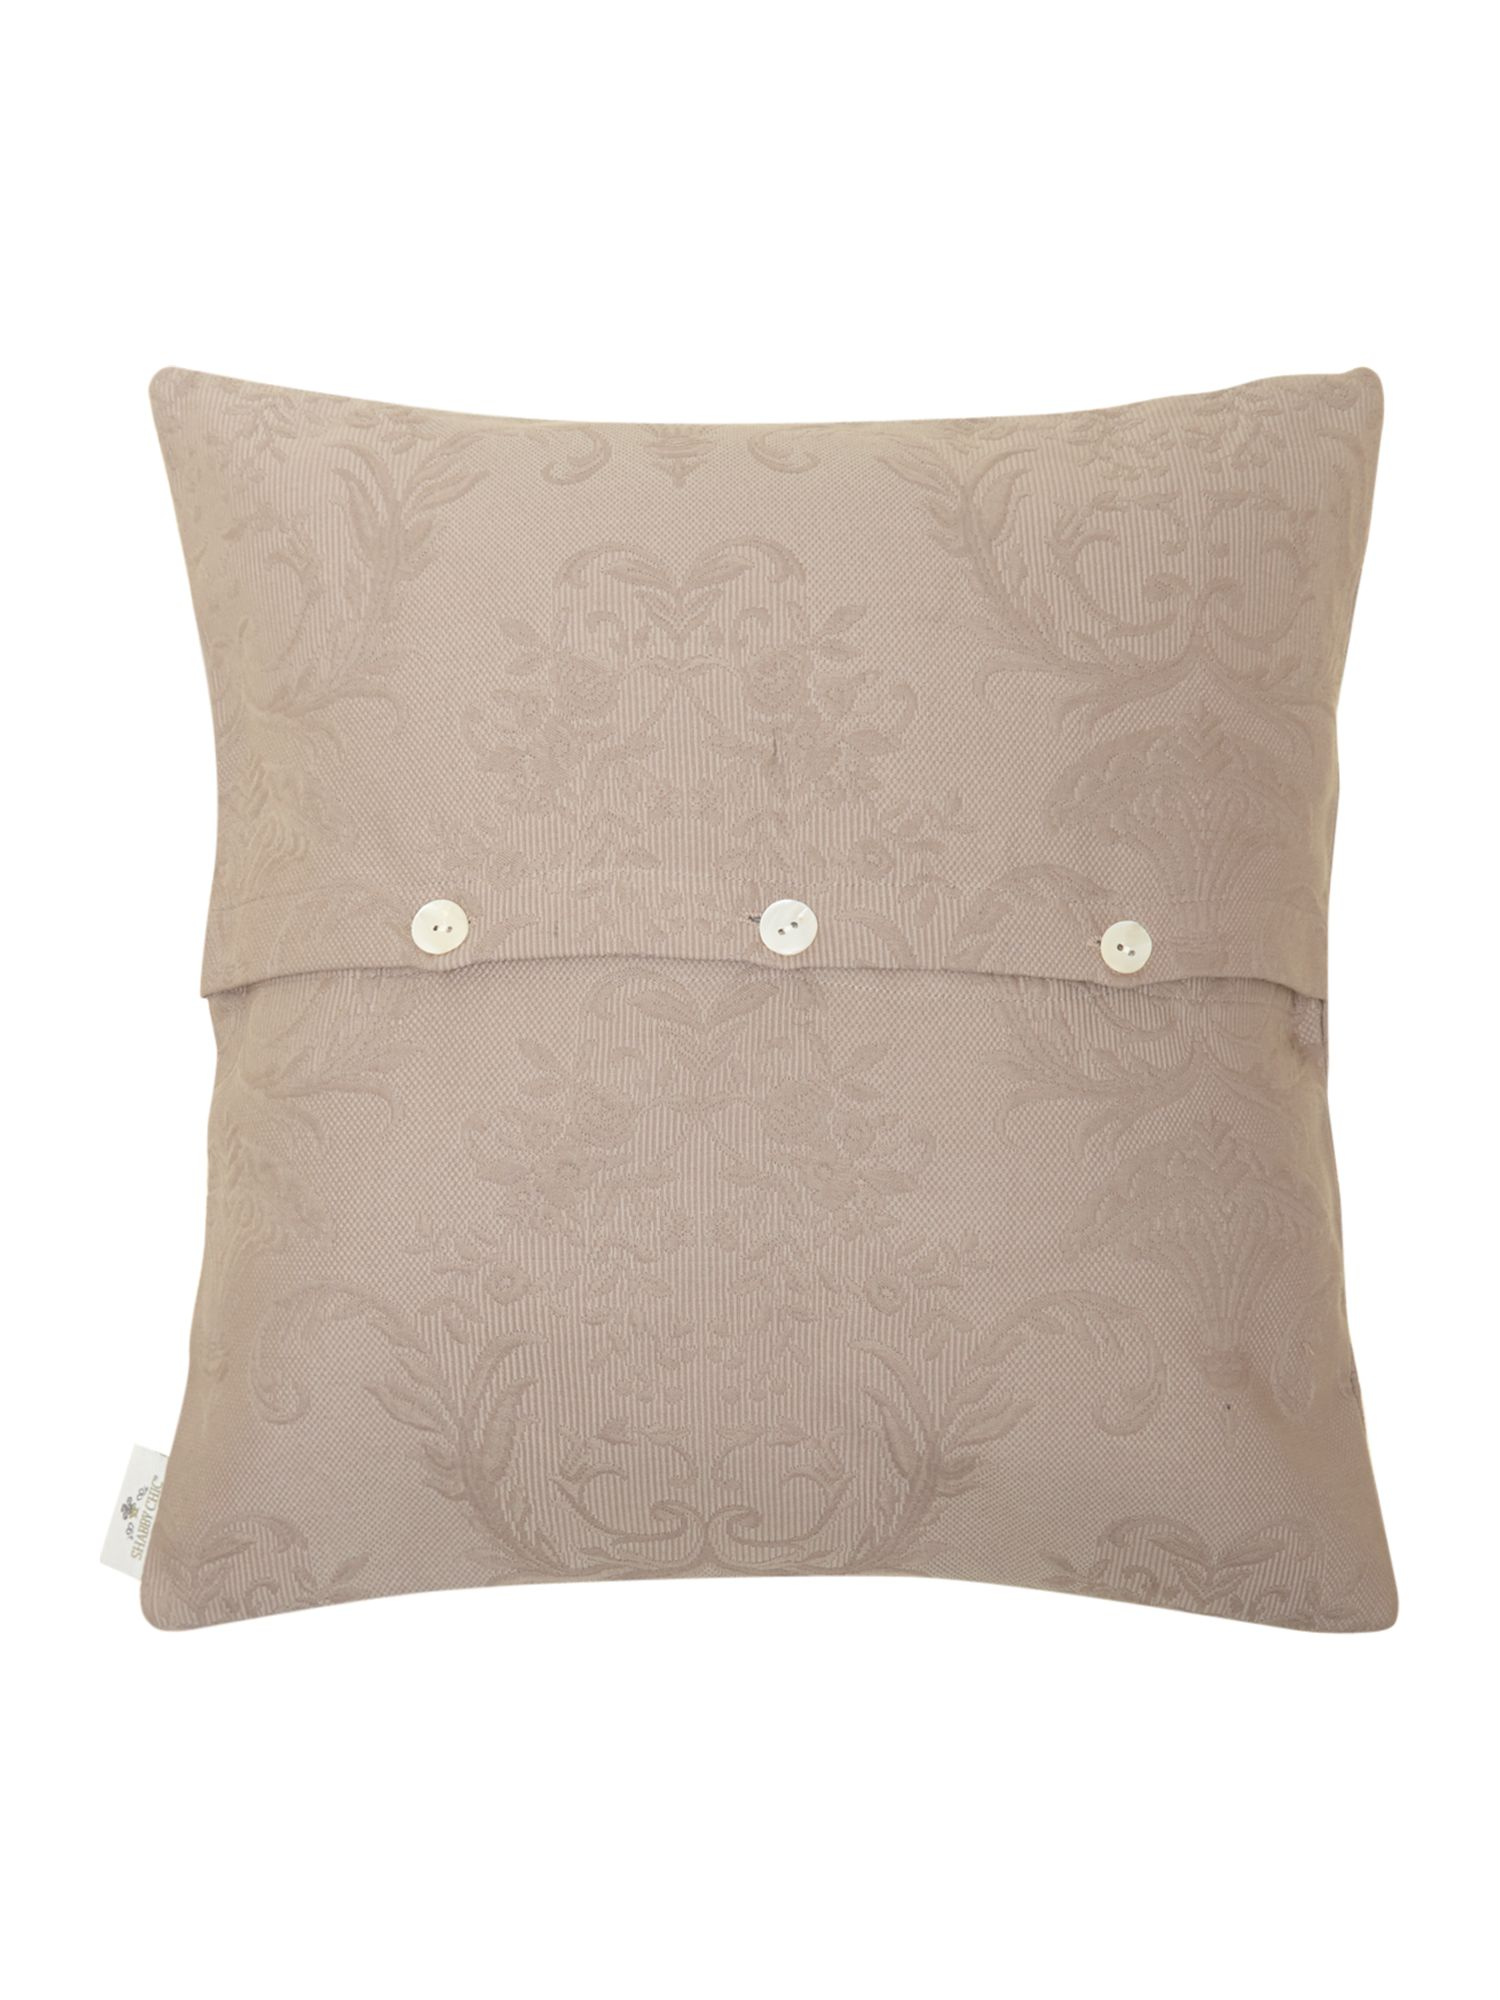 Lilac Matelasse cushion